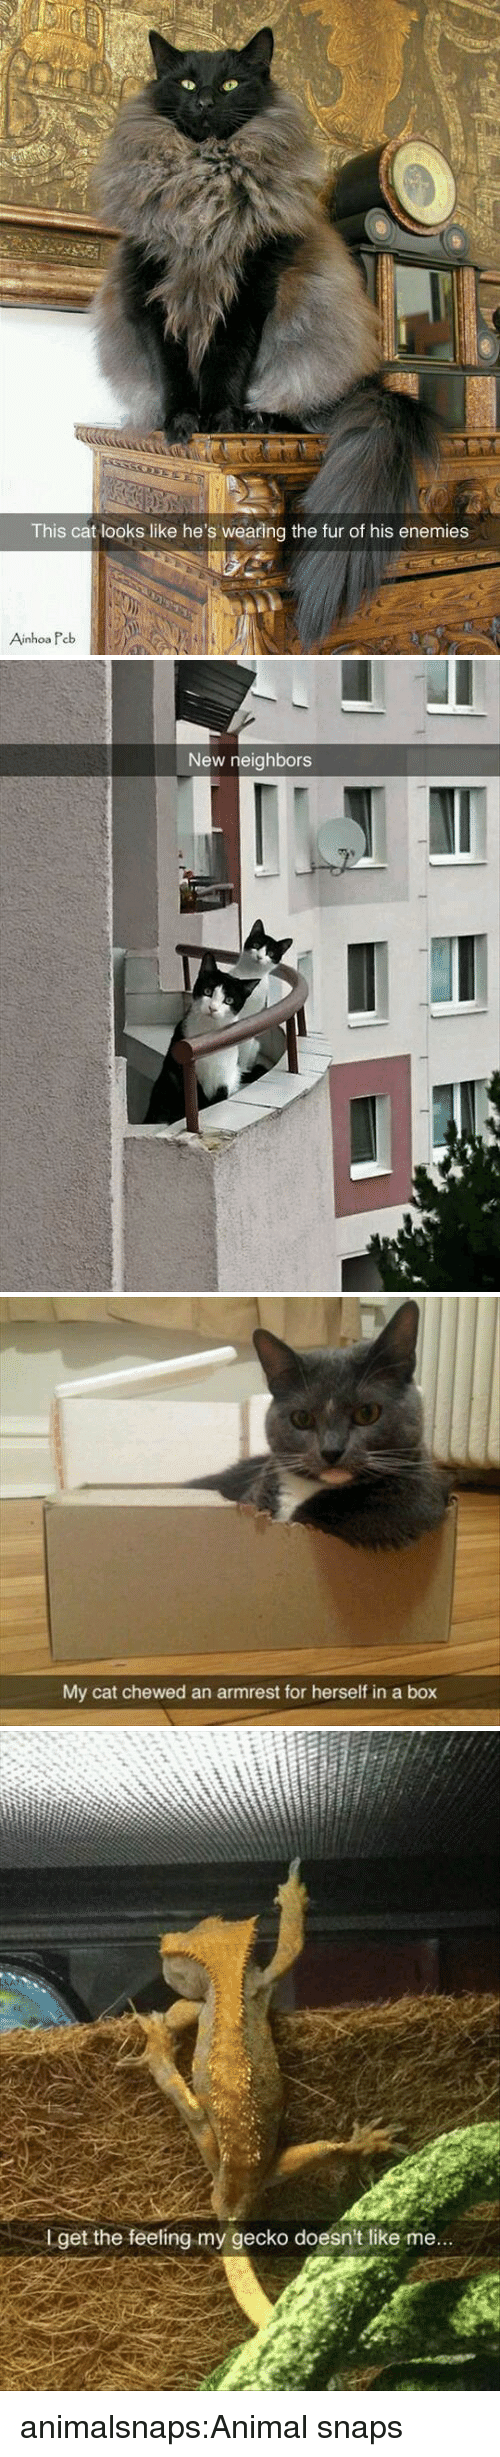 Tumblr, Animal, and Blog: 6%  This cat looks like he's wearing the fur of his enemies  Ainhoa Peb   New neighbors   My cat chewed an armrest for herself in a box   I get the feeling my gecko doesn't like me... animalsnaps:Animal snaps